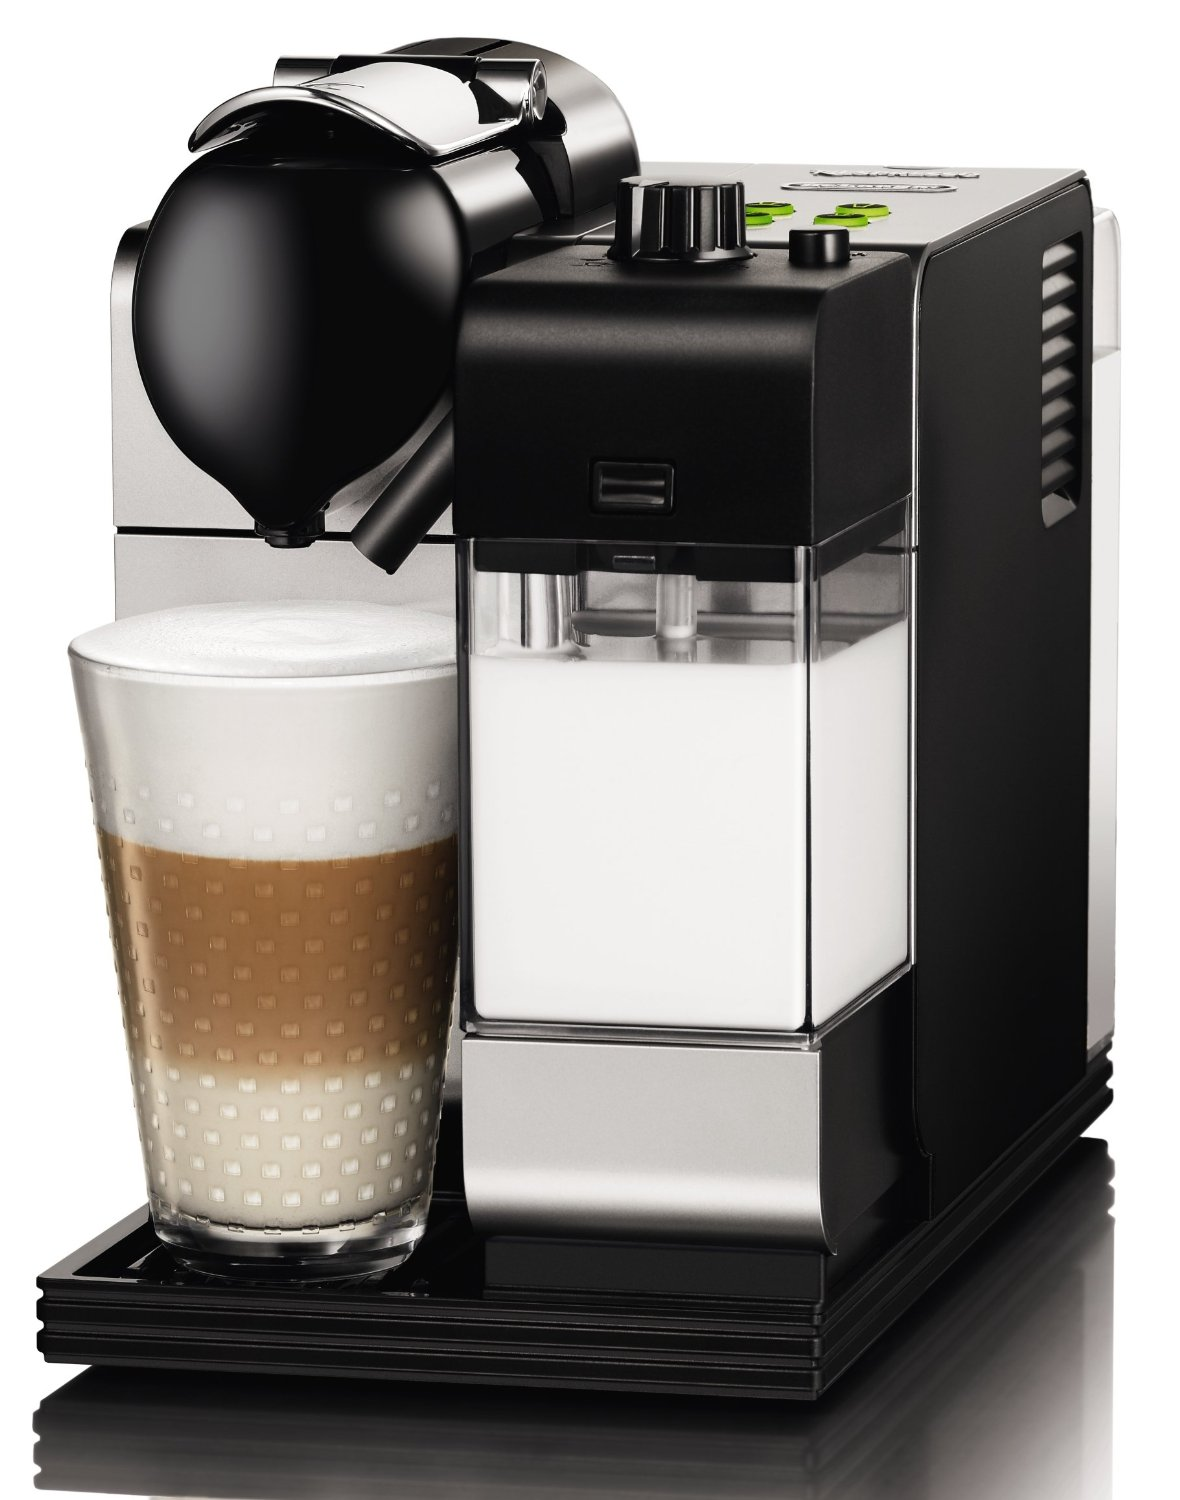 delonghi en520 s 19 bar 1 3kw nespresso lattissima plus. Black Bedroom Furniture Sets. Home Design Ideas